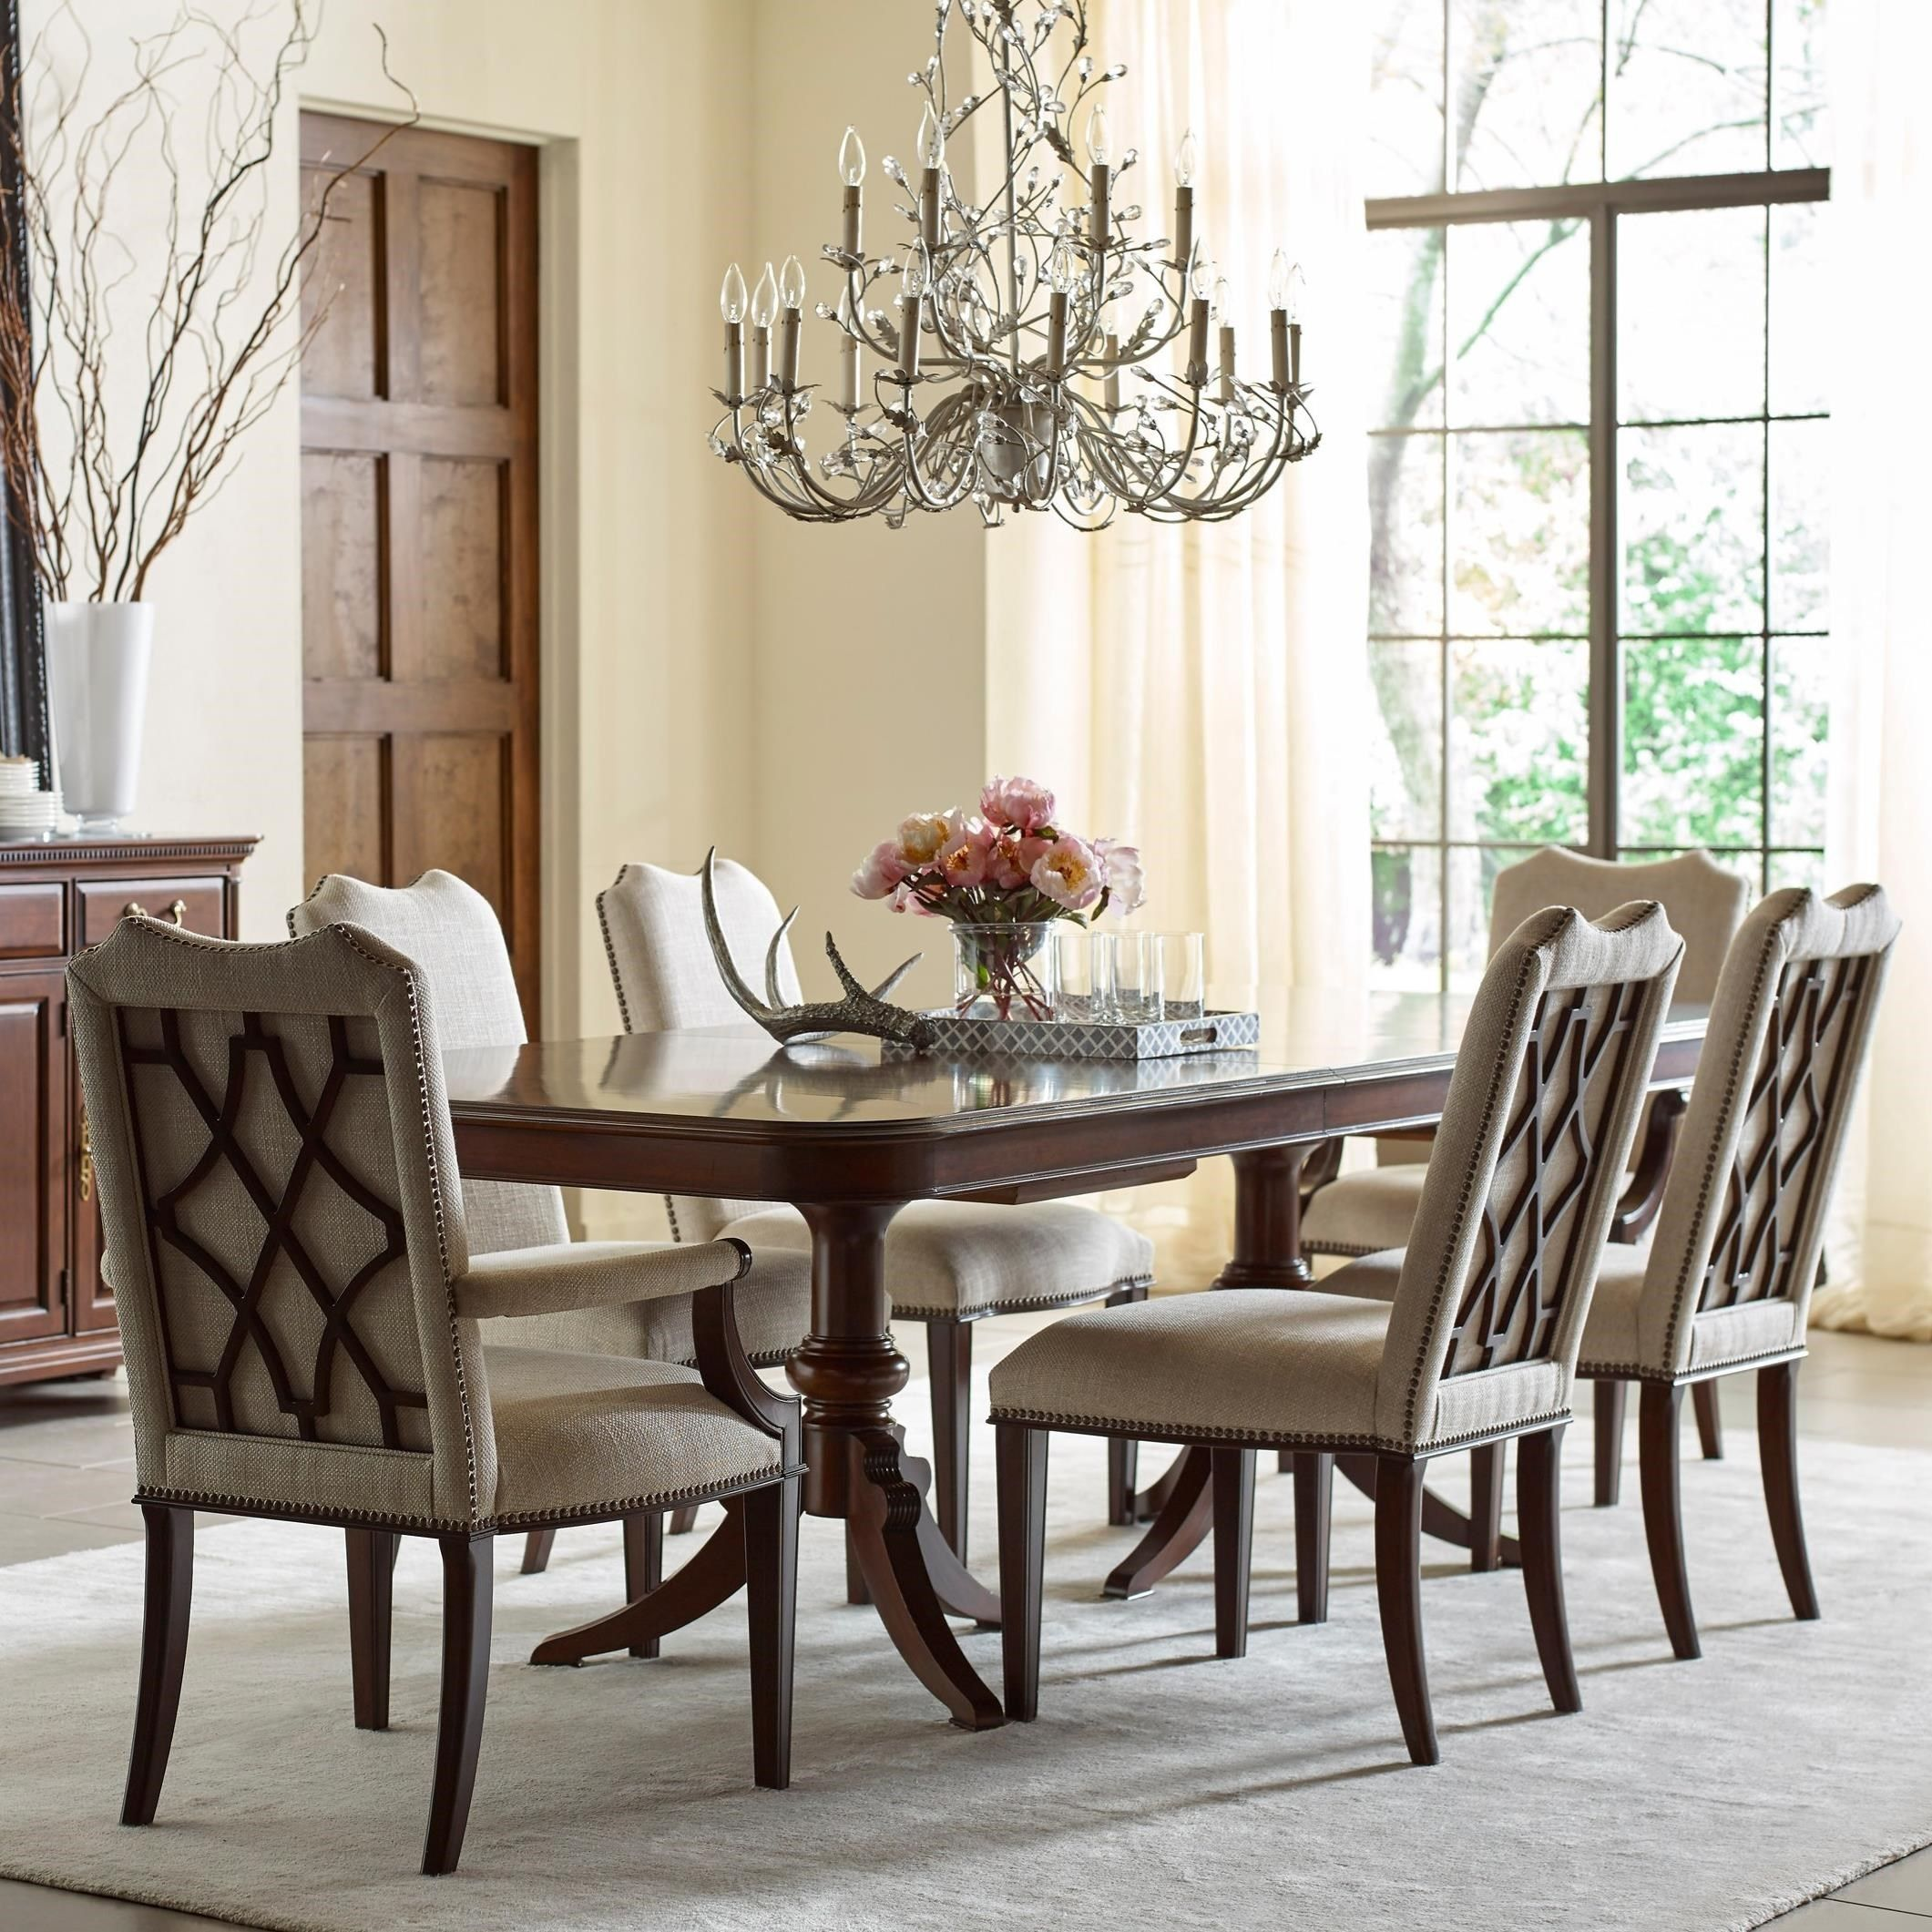 Hadleigh Seven Piece Formal Dining Set With Upholstered Chairs By Kincaid Furniture At Wayside Furniture In 2021 Pedestal Dining Table Dining Room Furniture Furniture